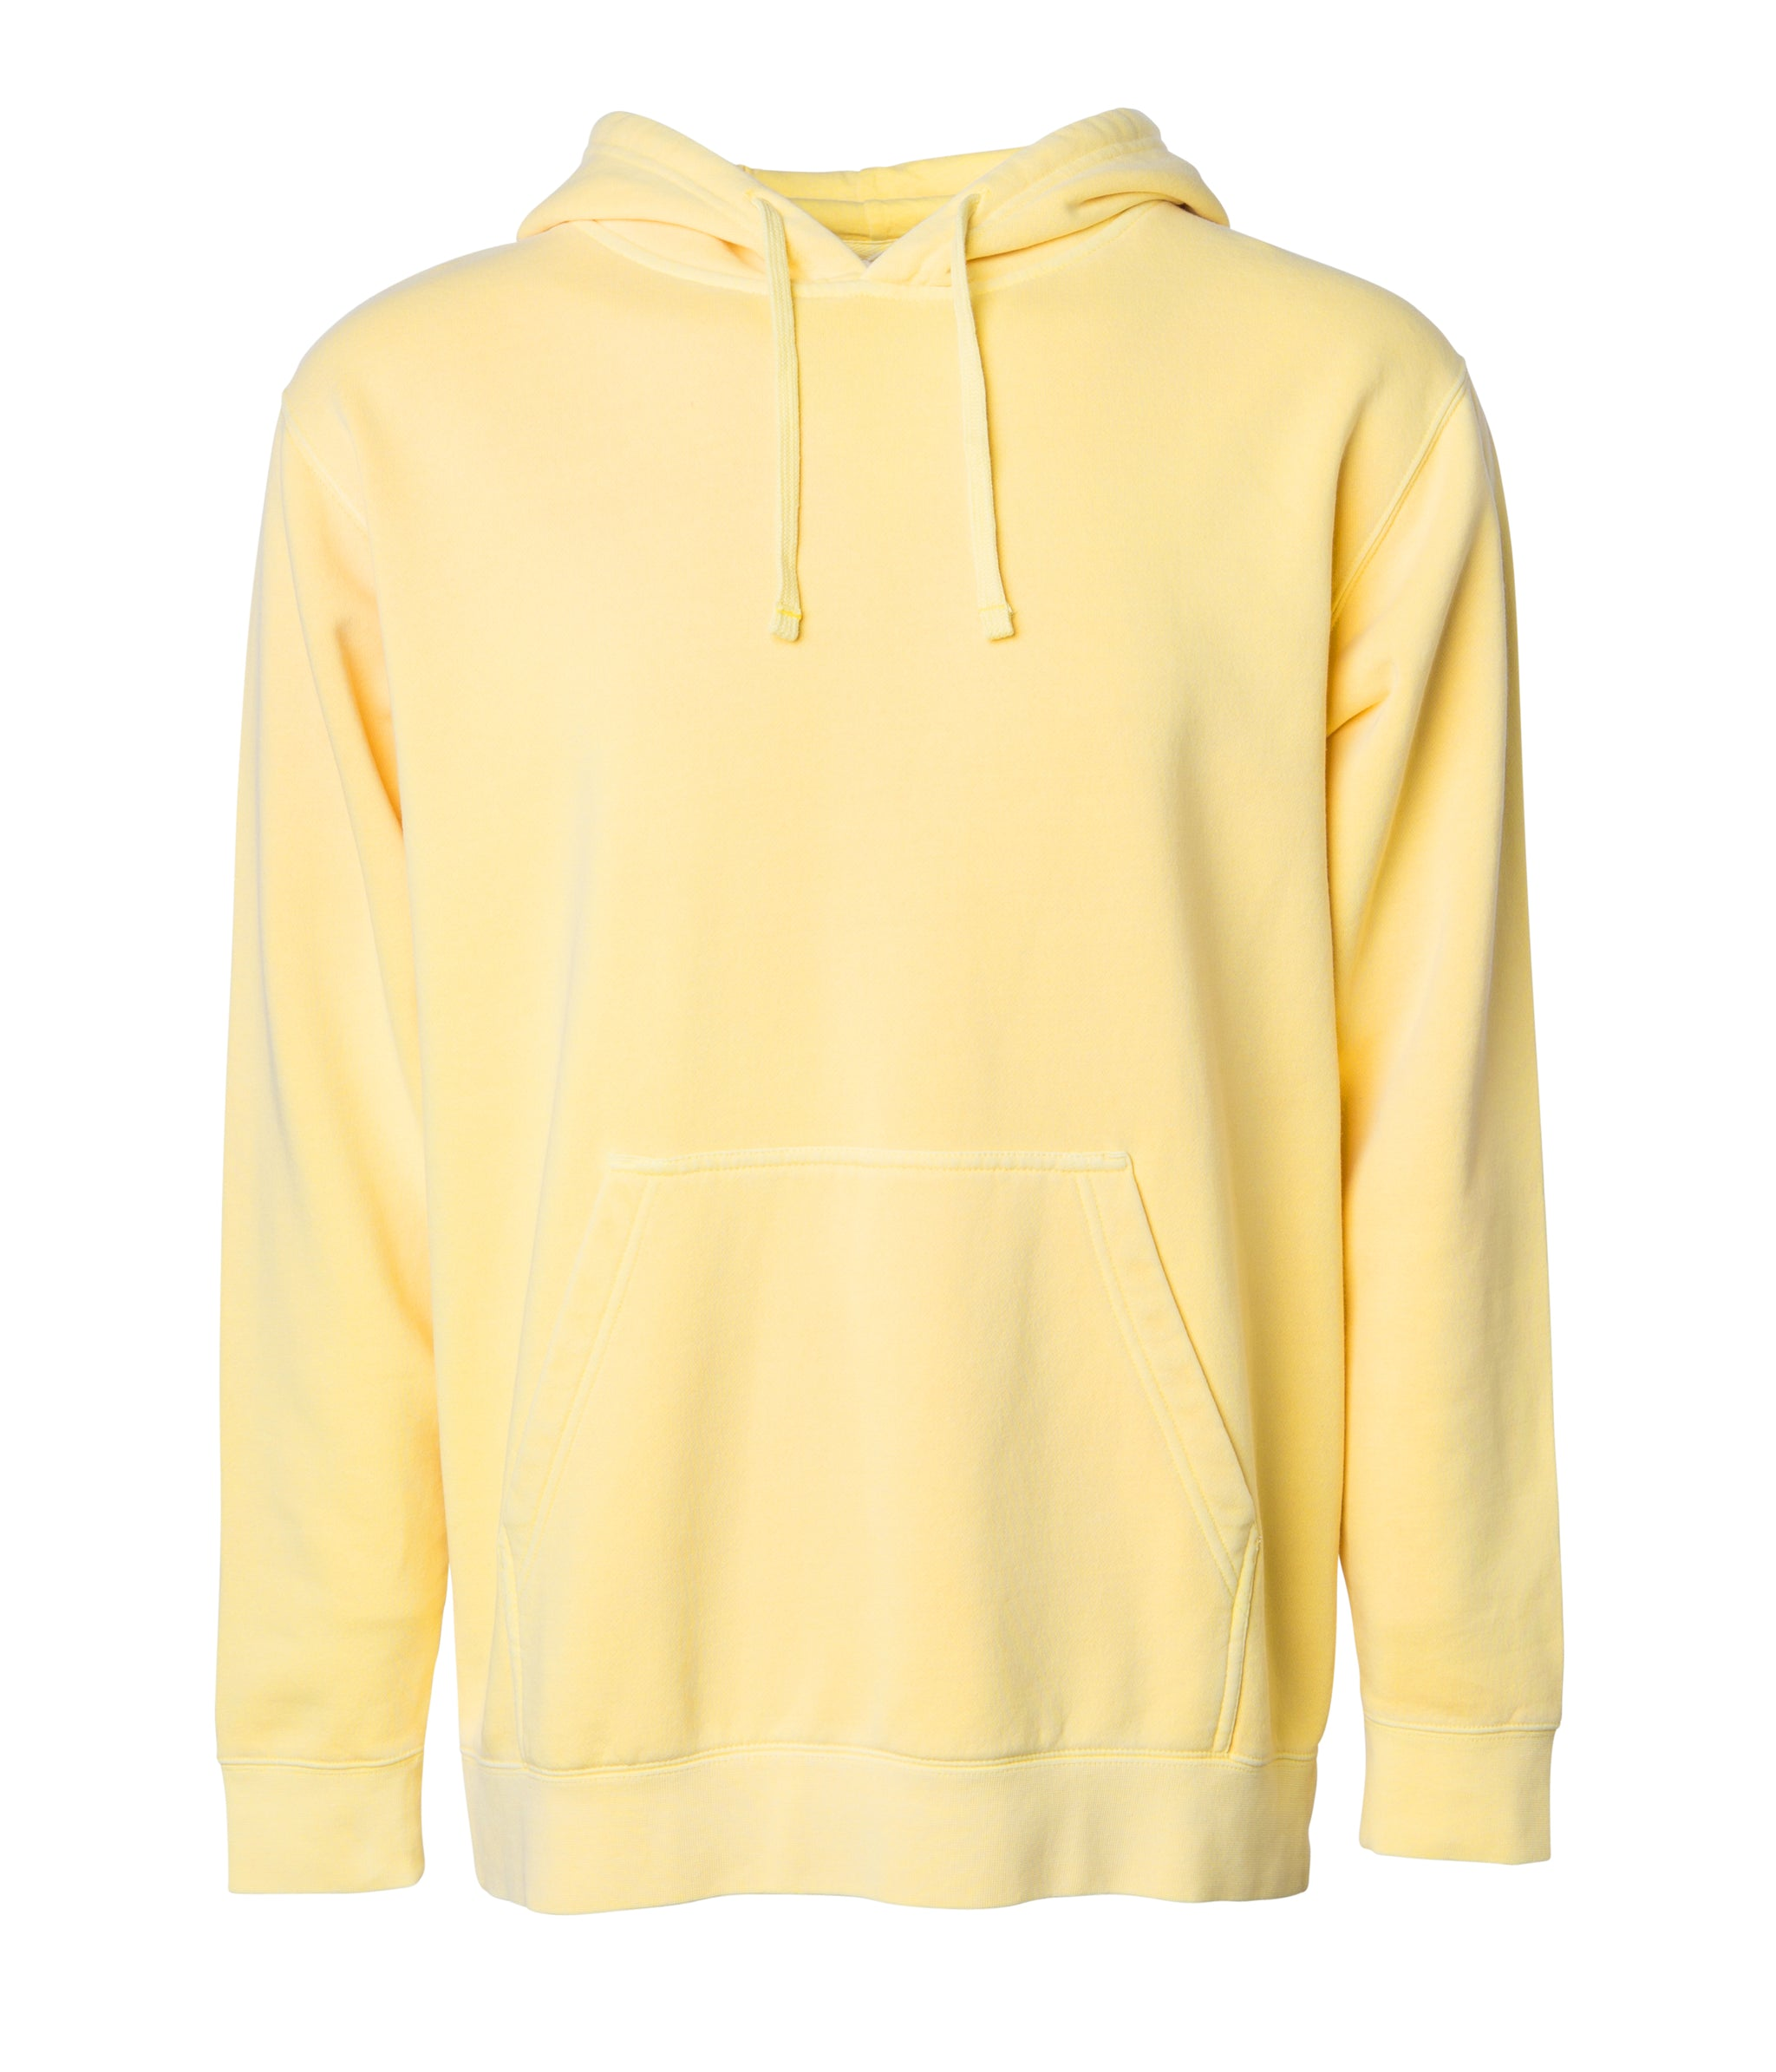 3318cc82 Unisex Midweight Pigment Dyed Hooded Pullover | ITC - Independent ...